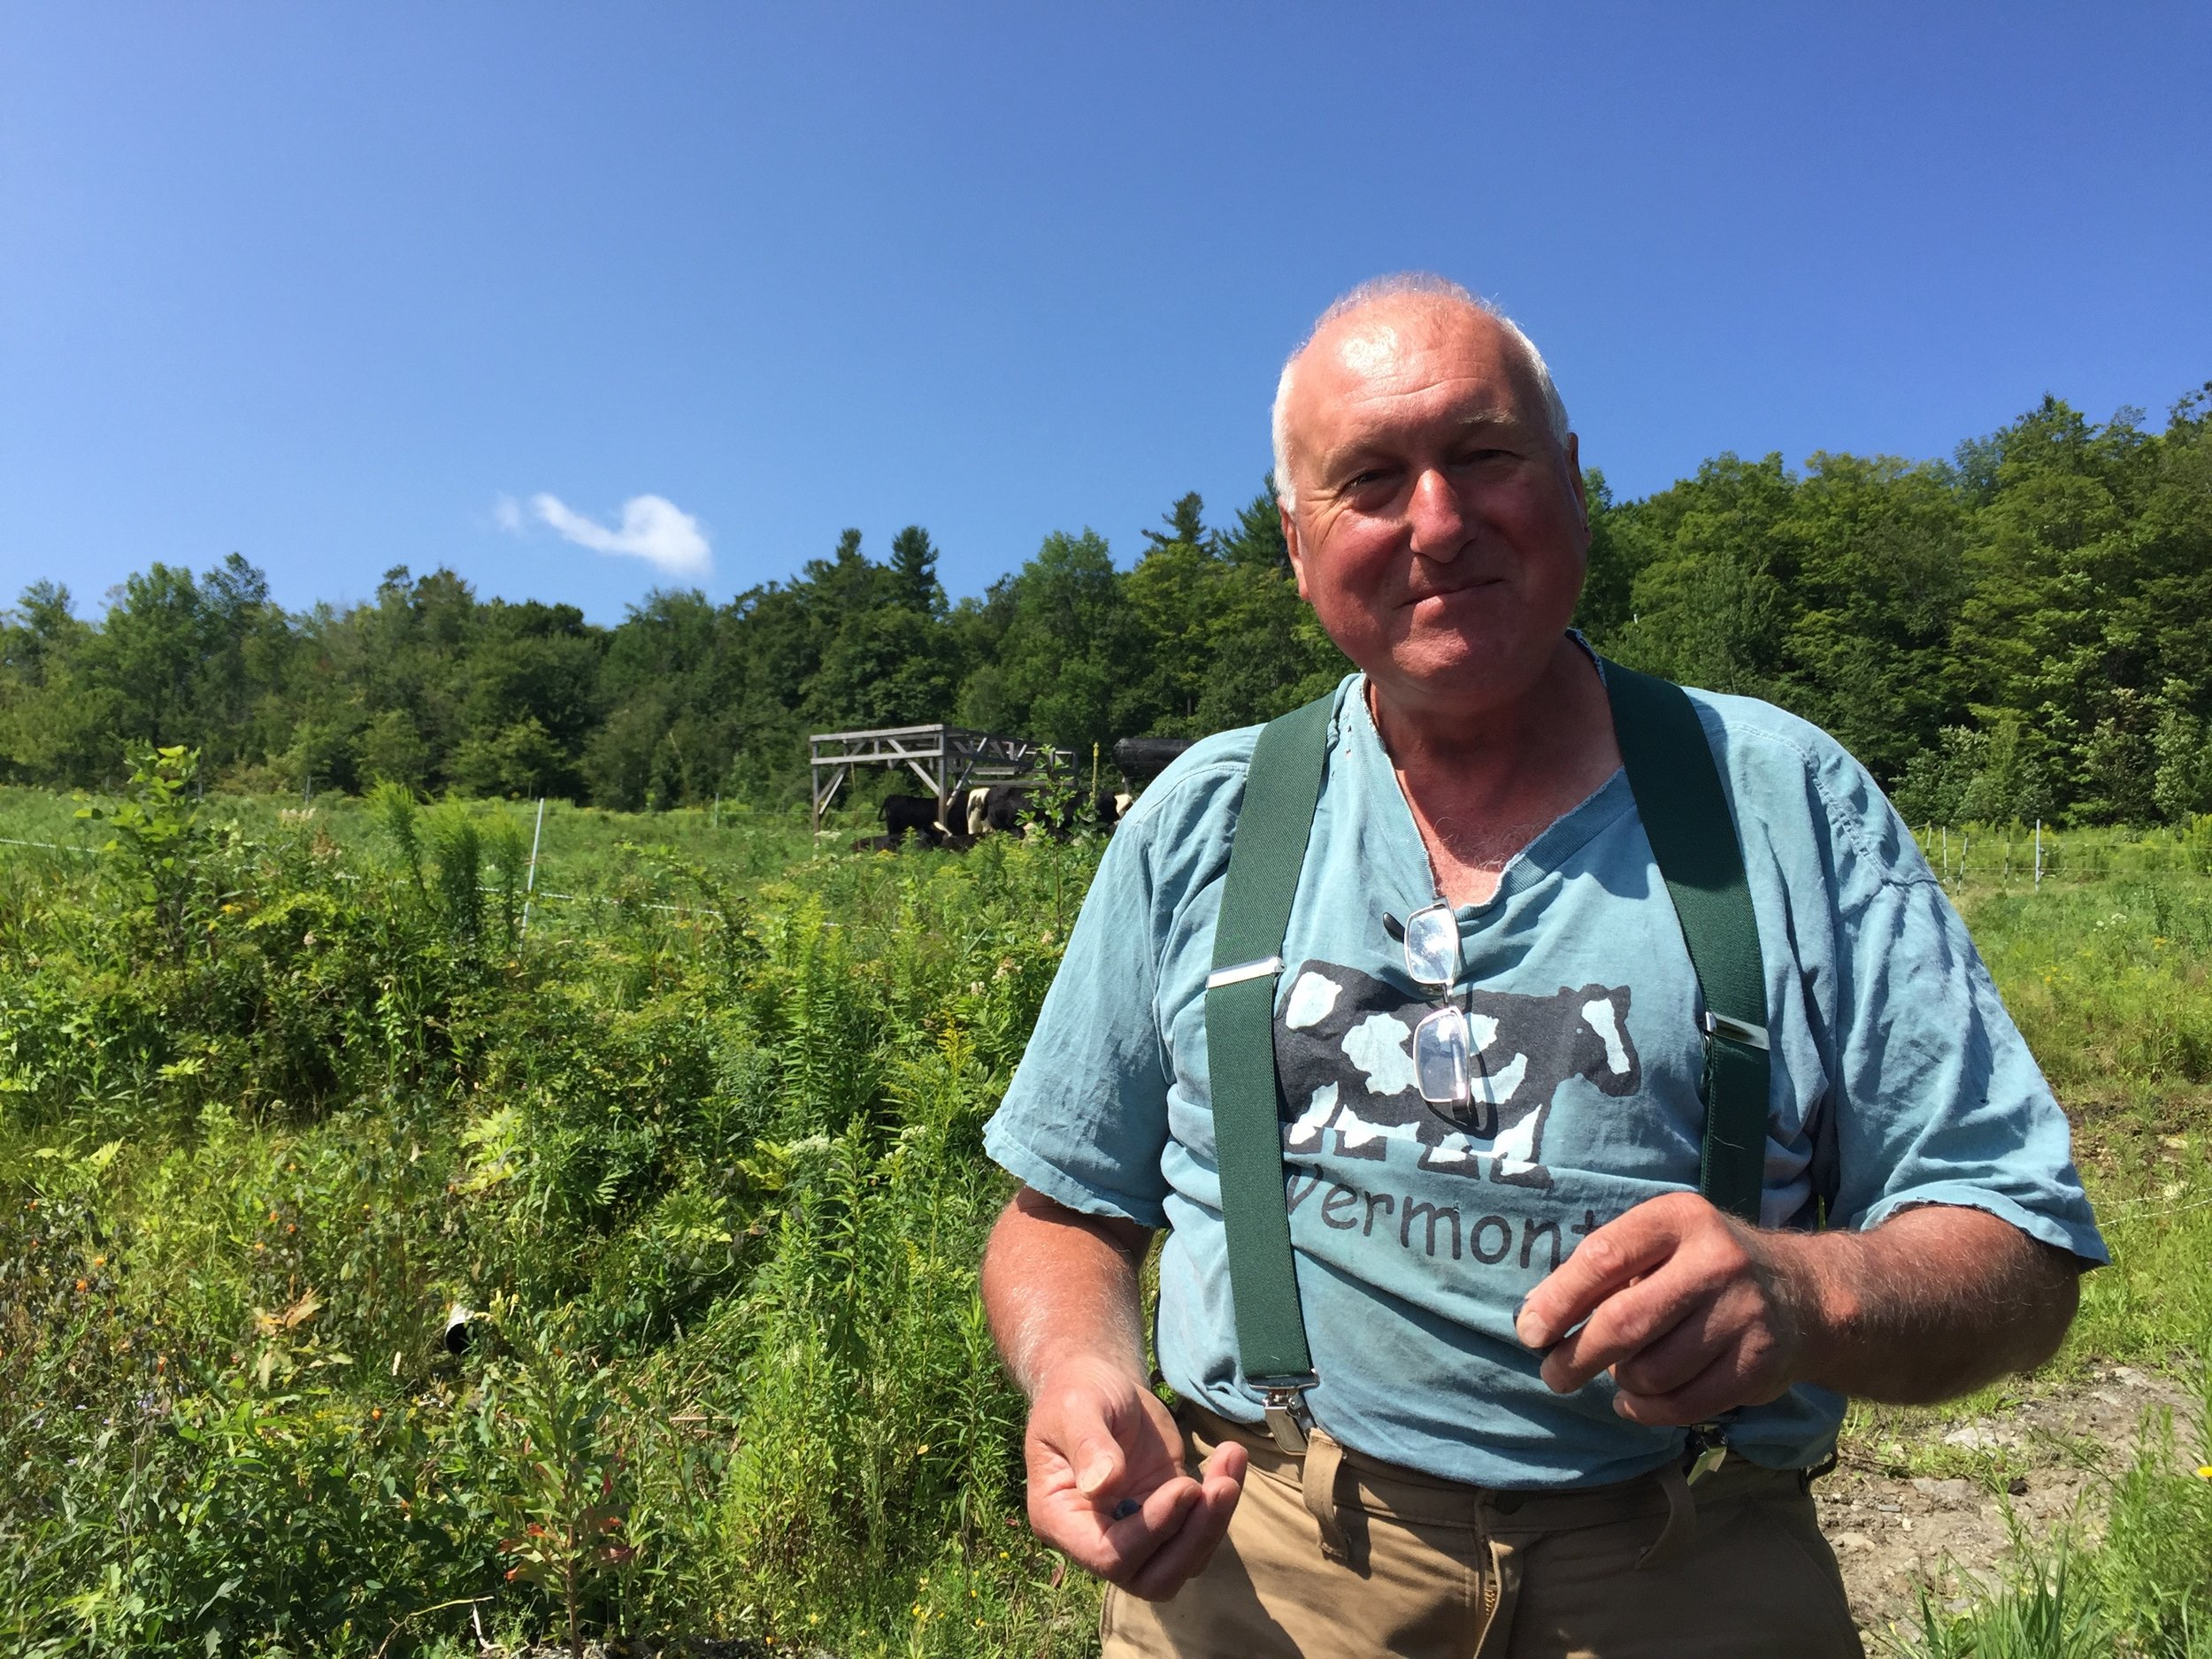 Geof dolman, the farmer, with cows in the background, and cows on his heart